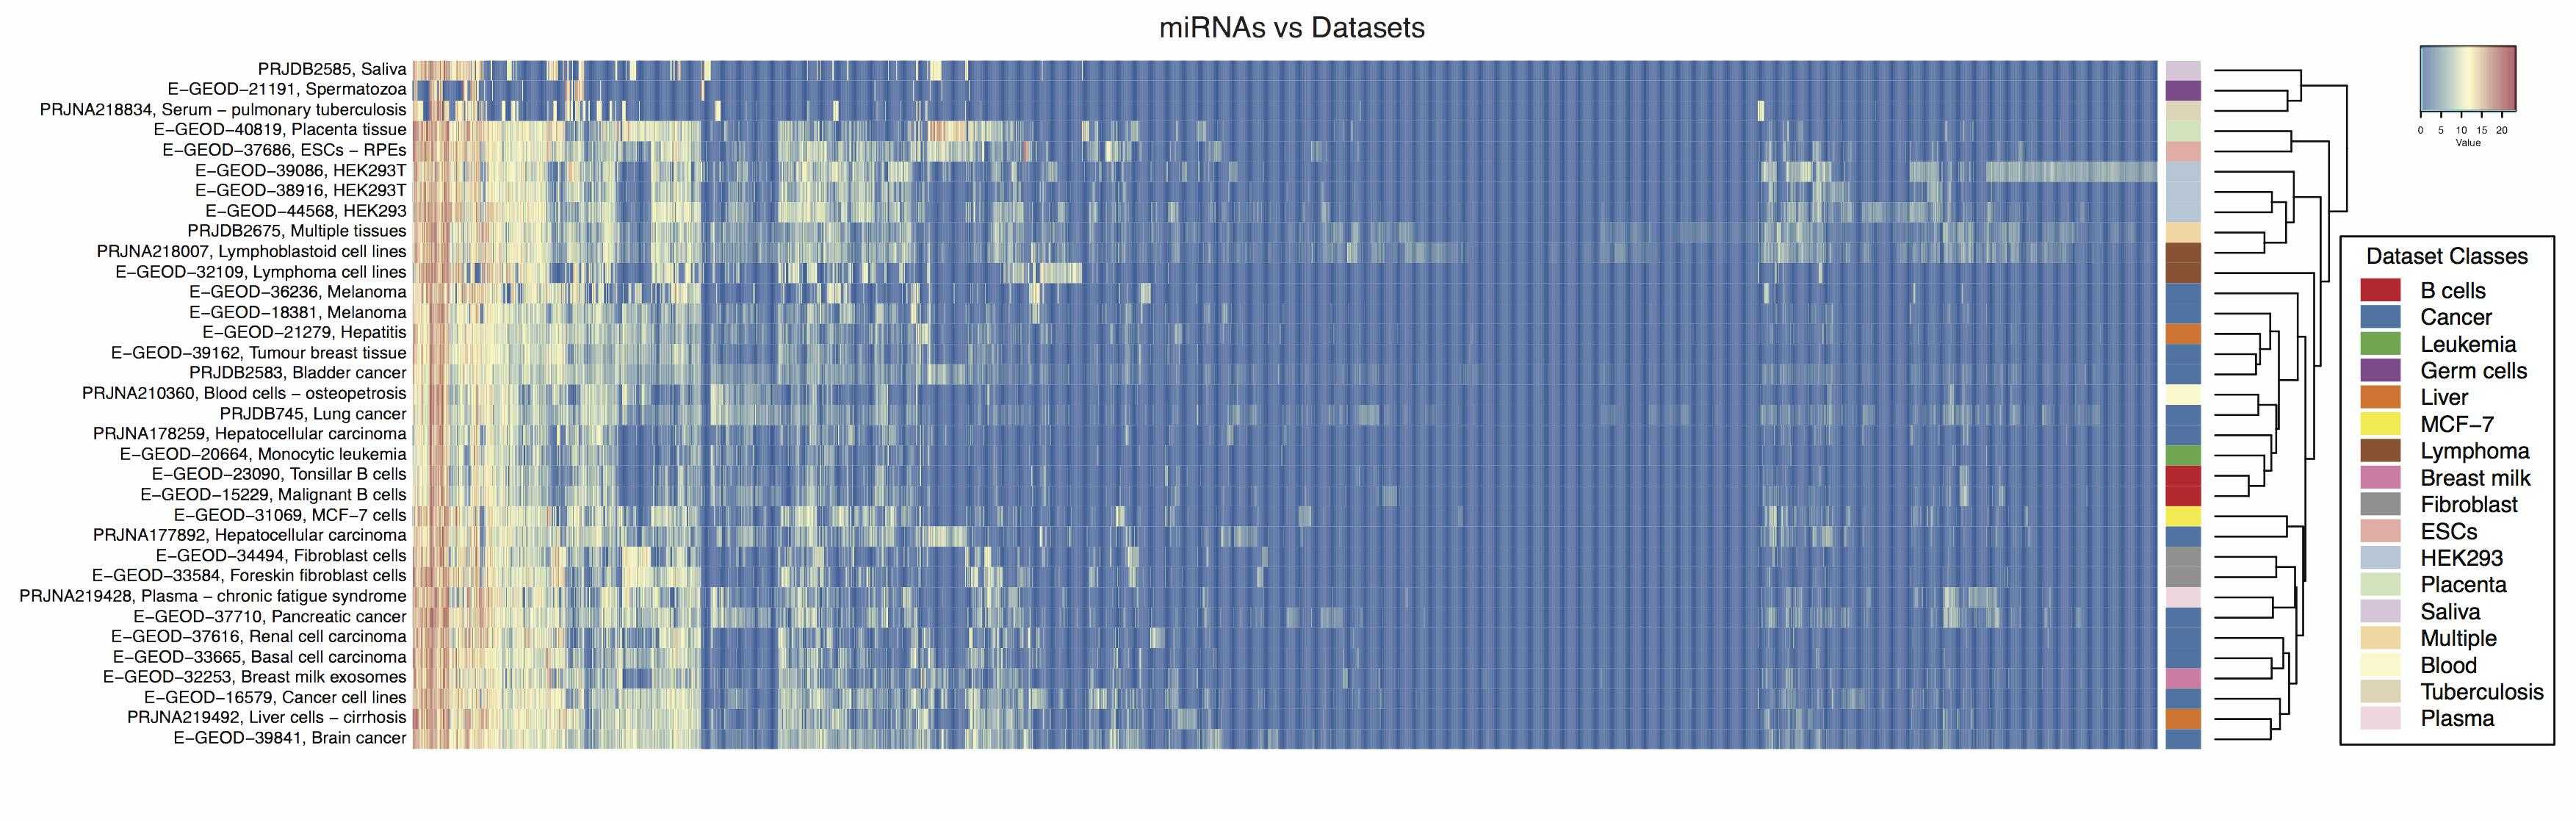 Uridylation profiles of miRNAs in cancer datasets